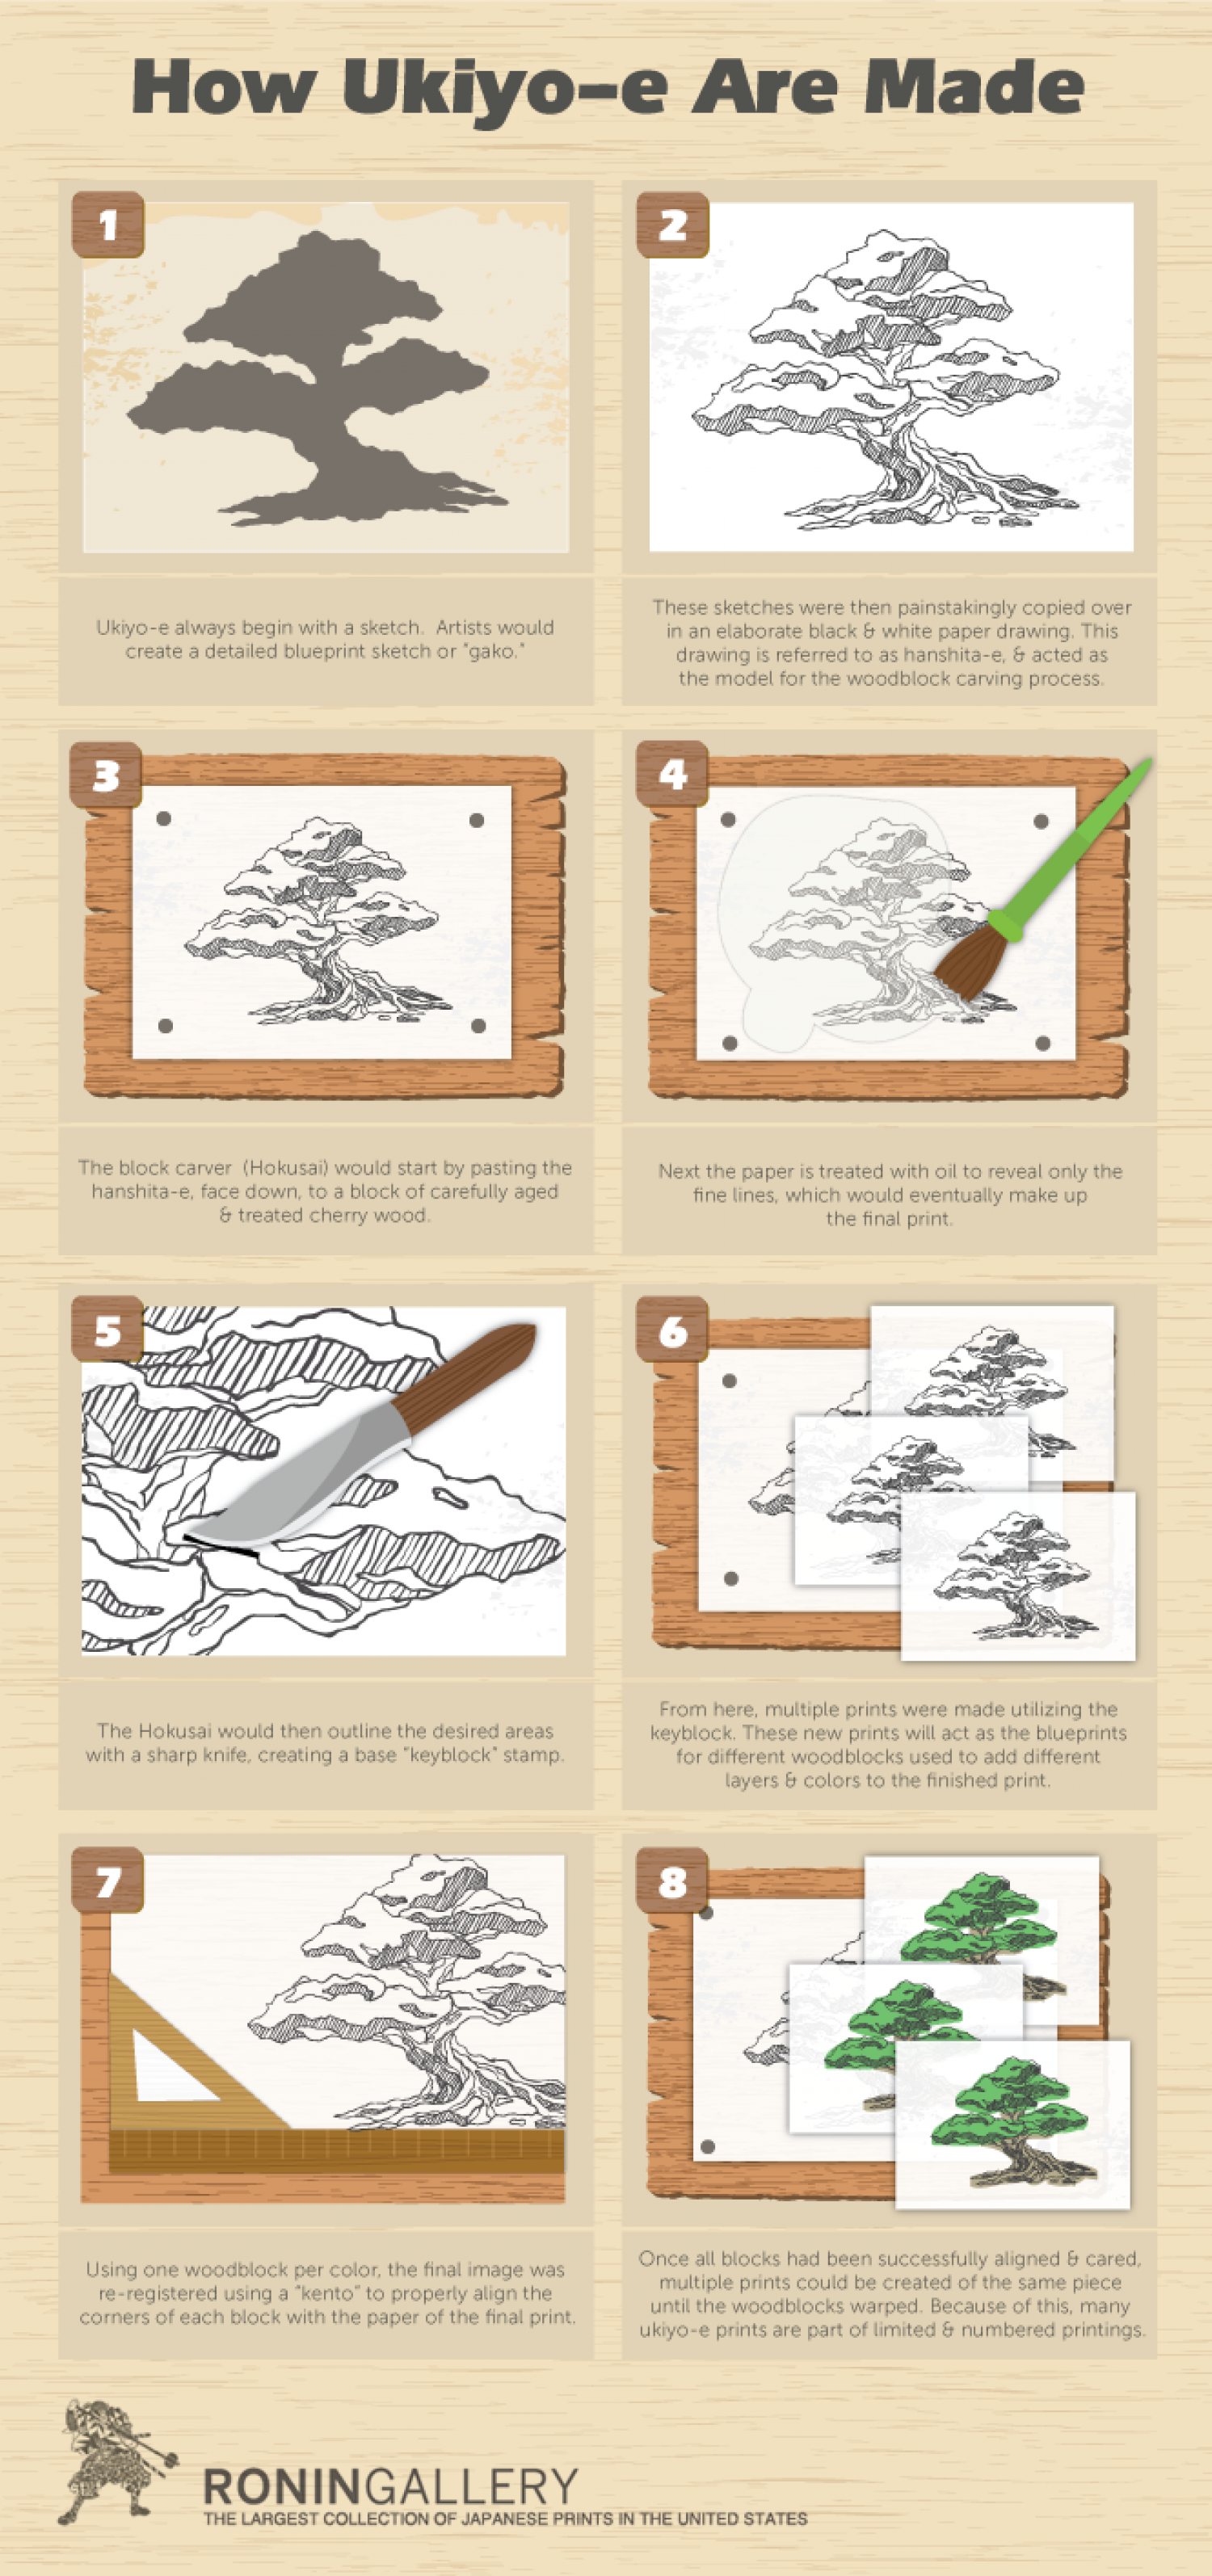 How Ukiyo-e Are Made Infographic